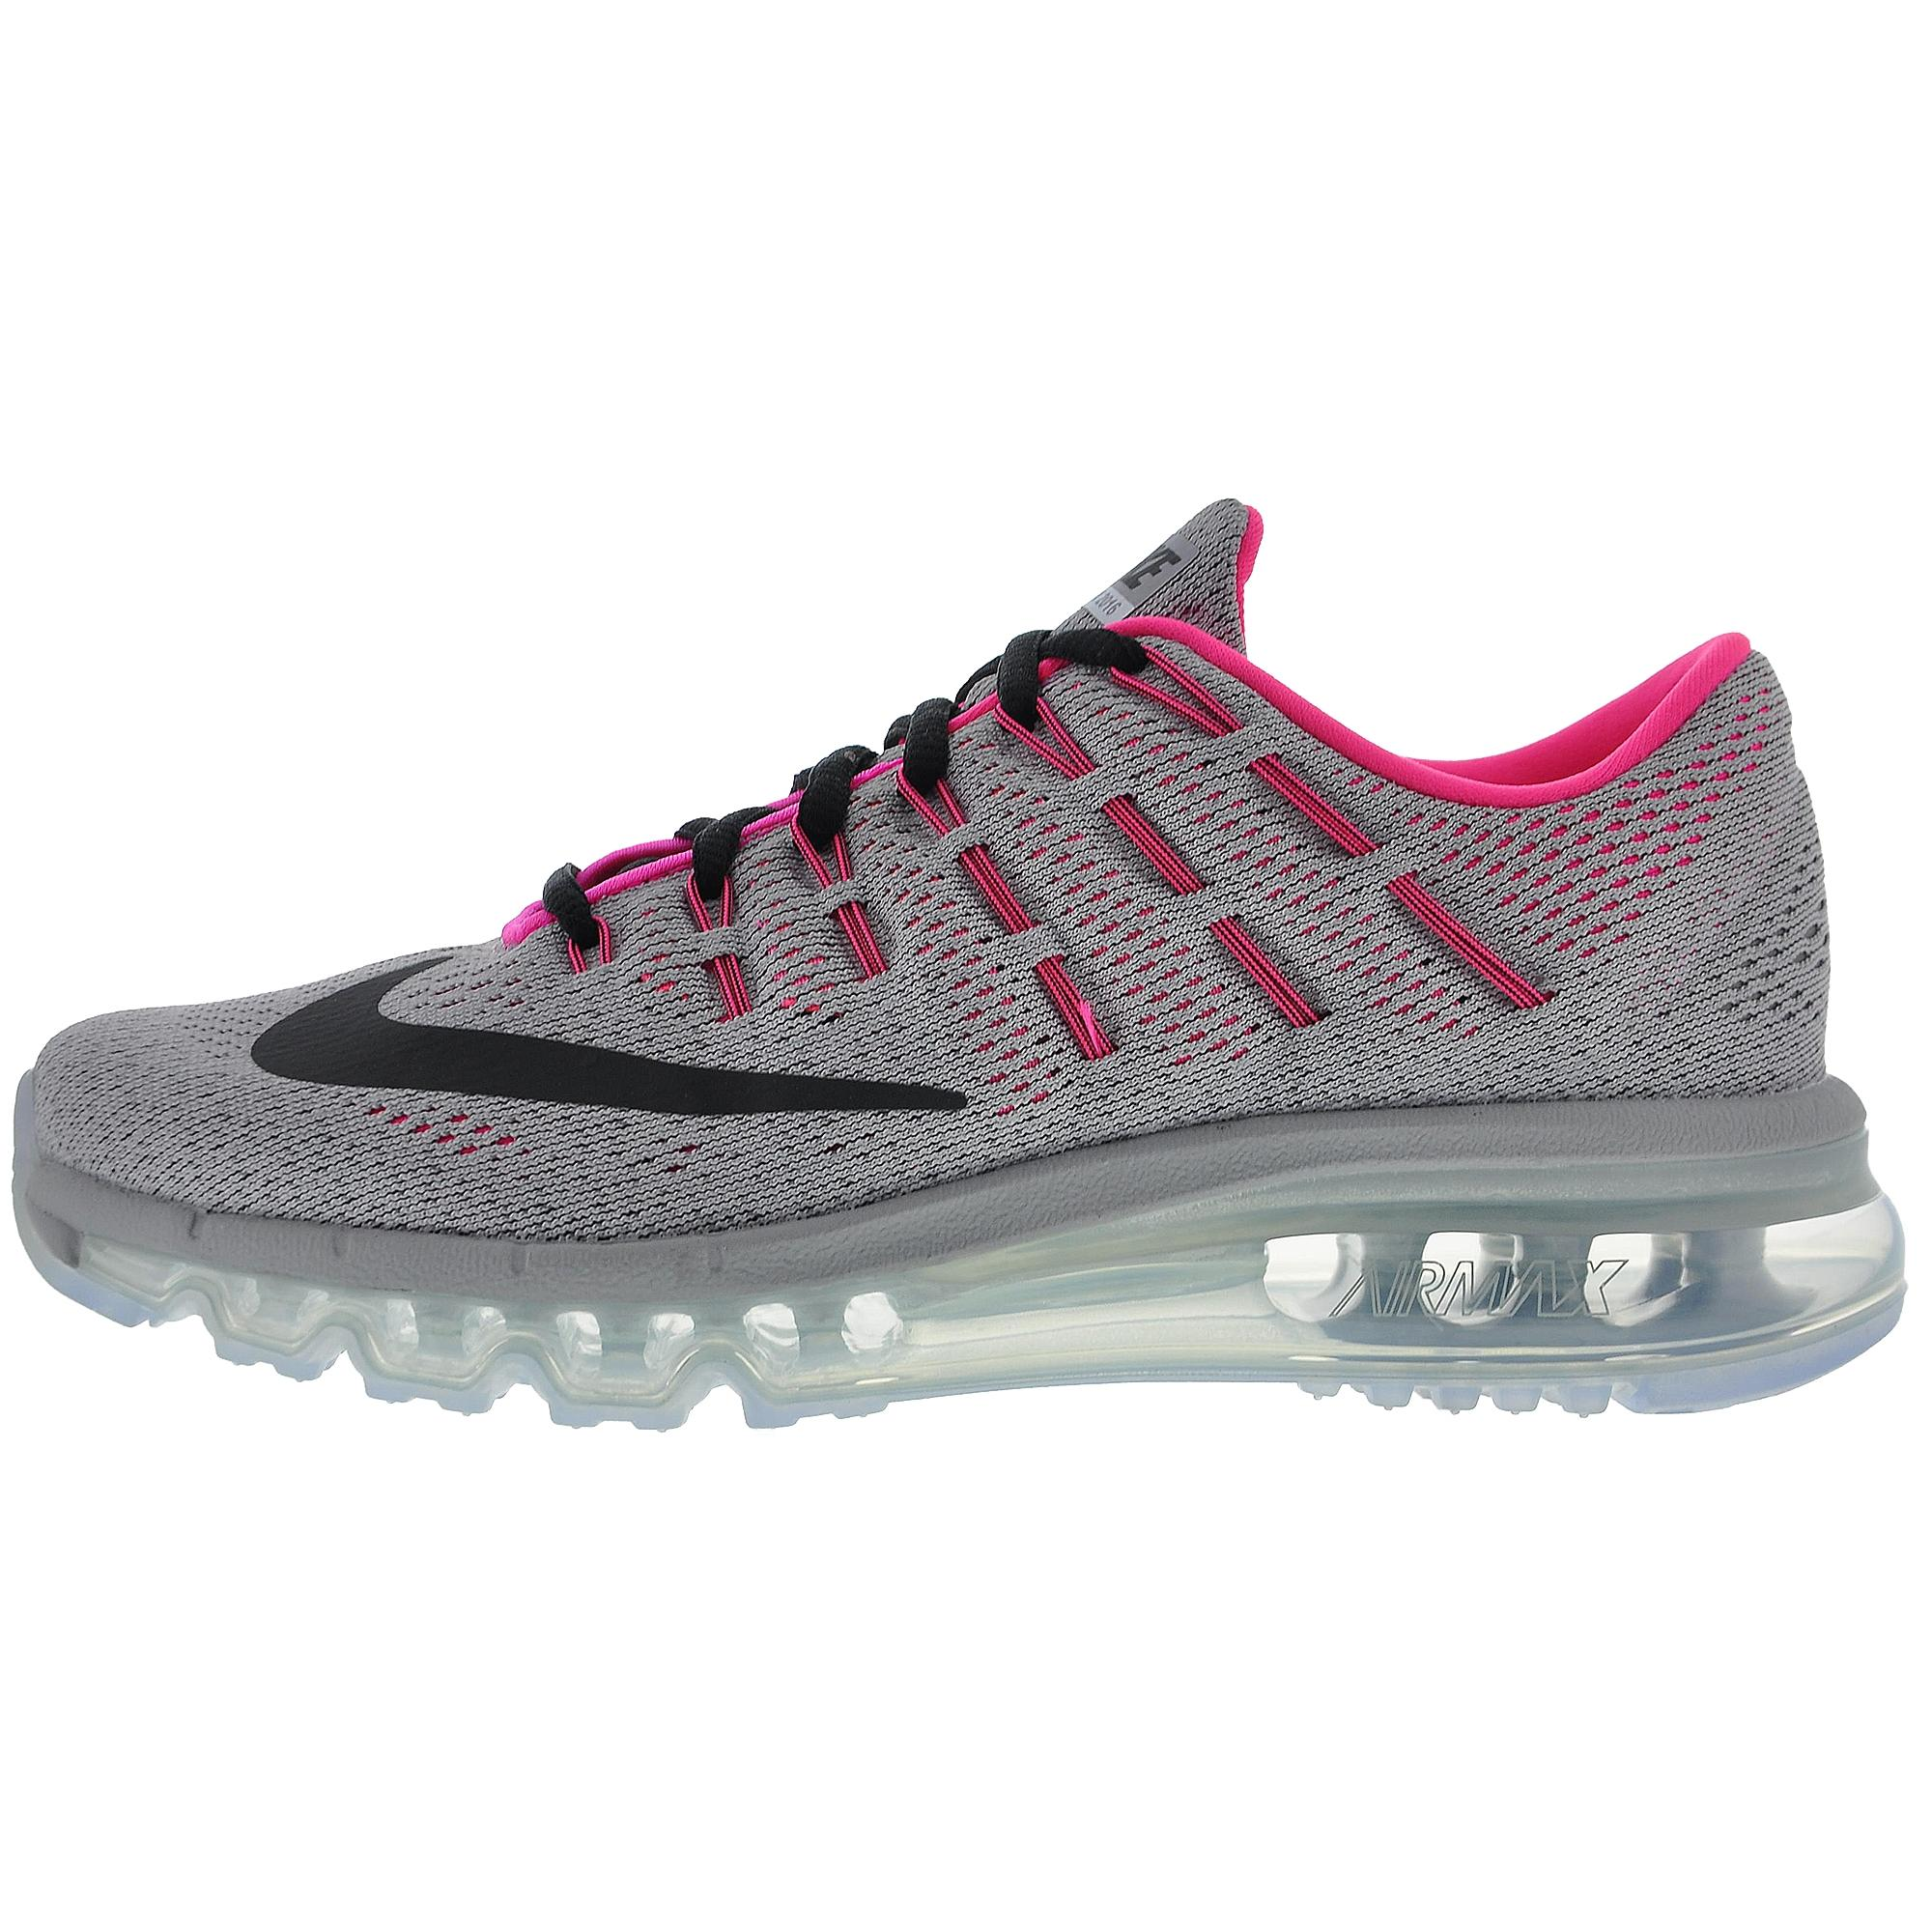 e76dba07f4e52 nike air pegasus 34. Nike air zoom mystify iv ladies.